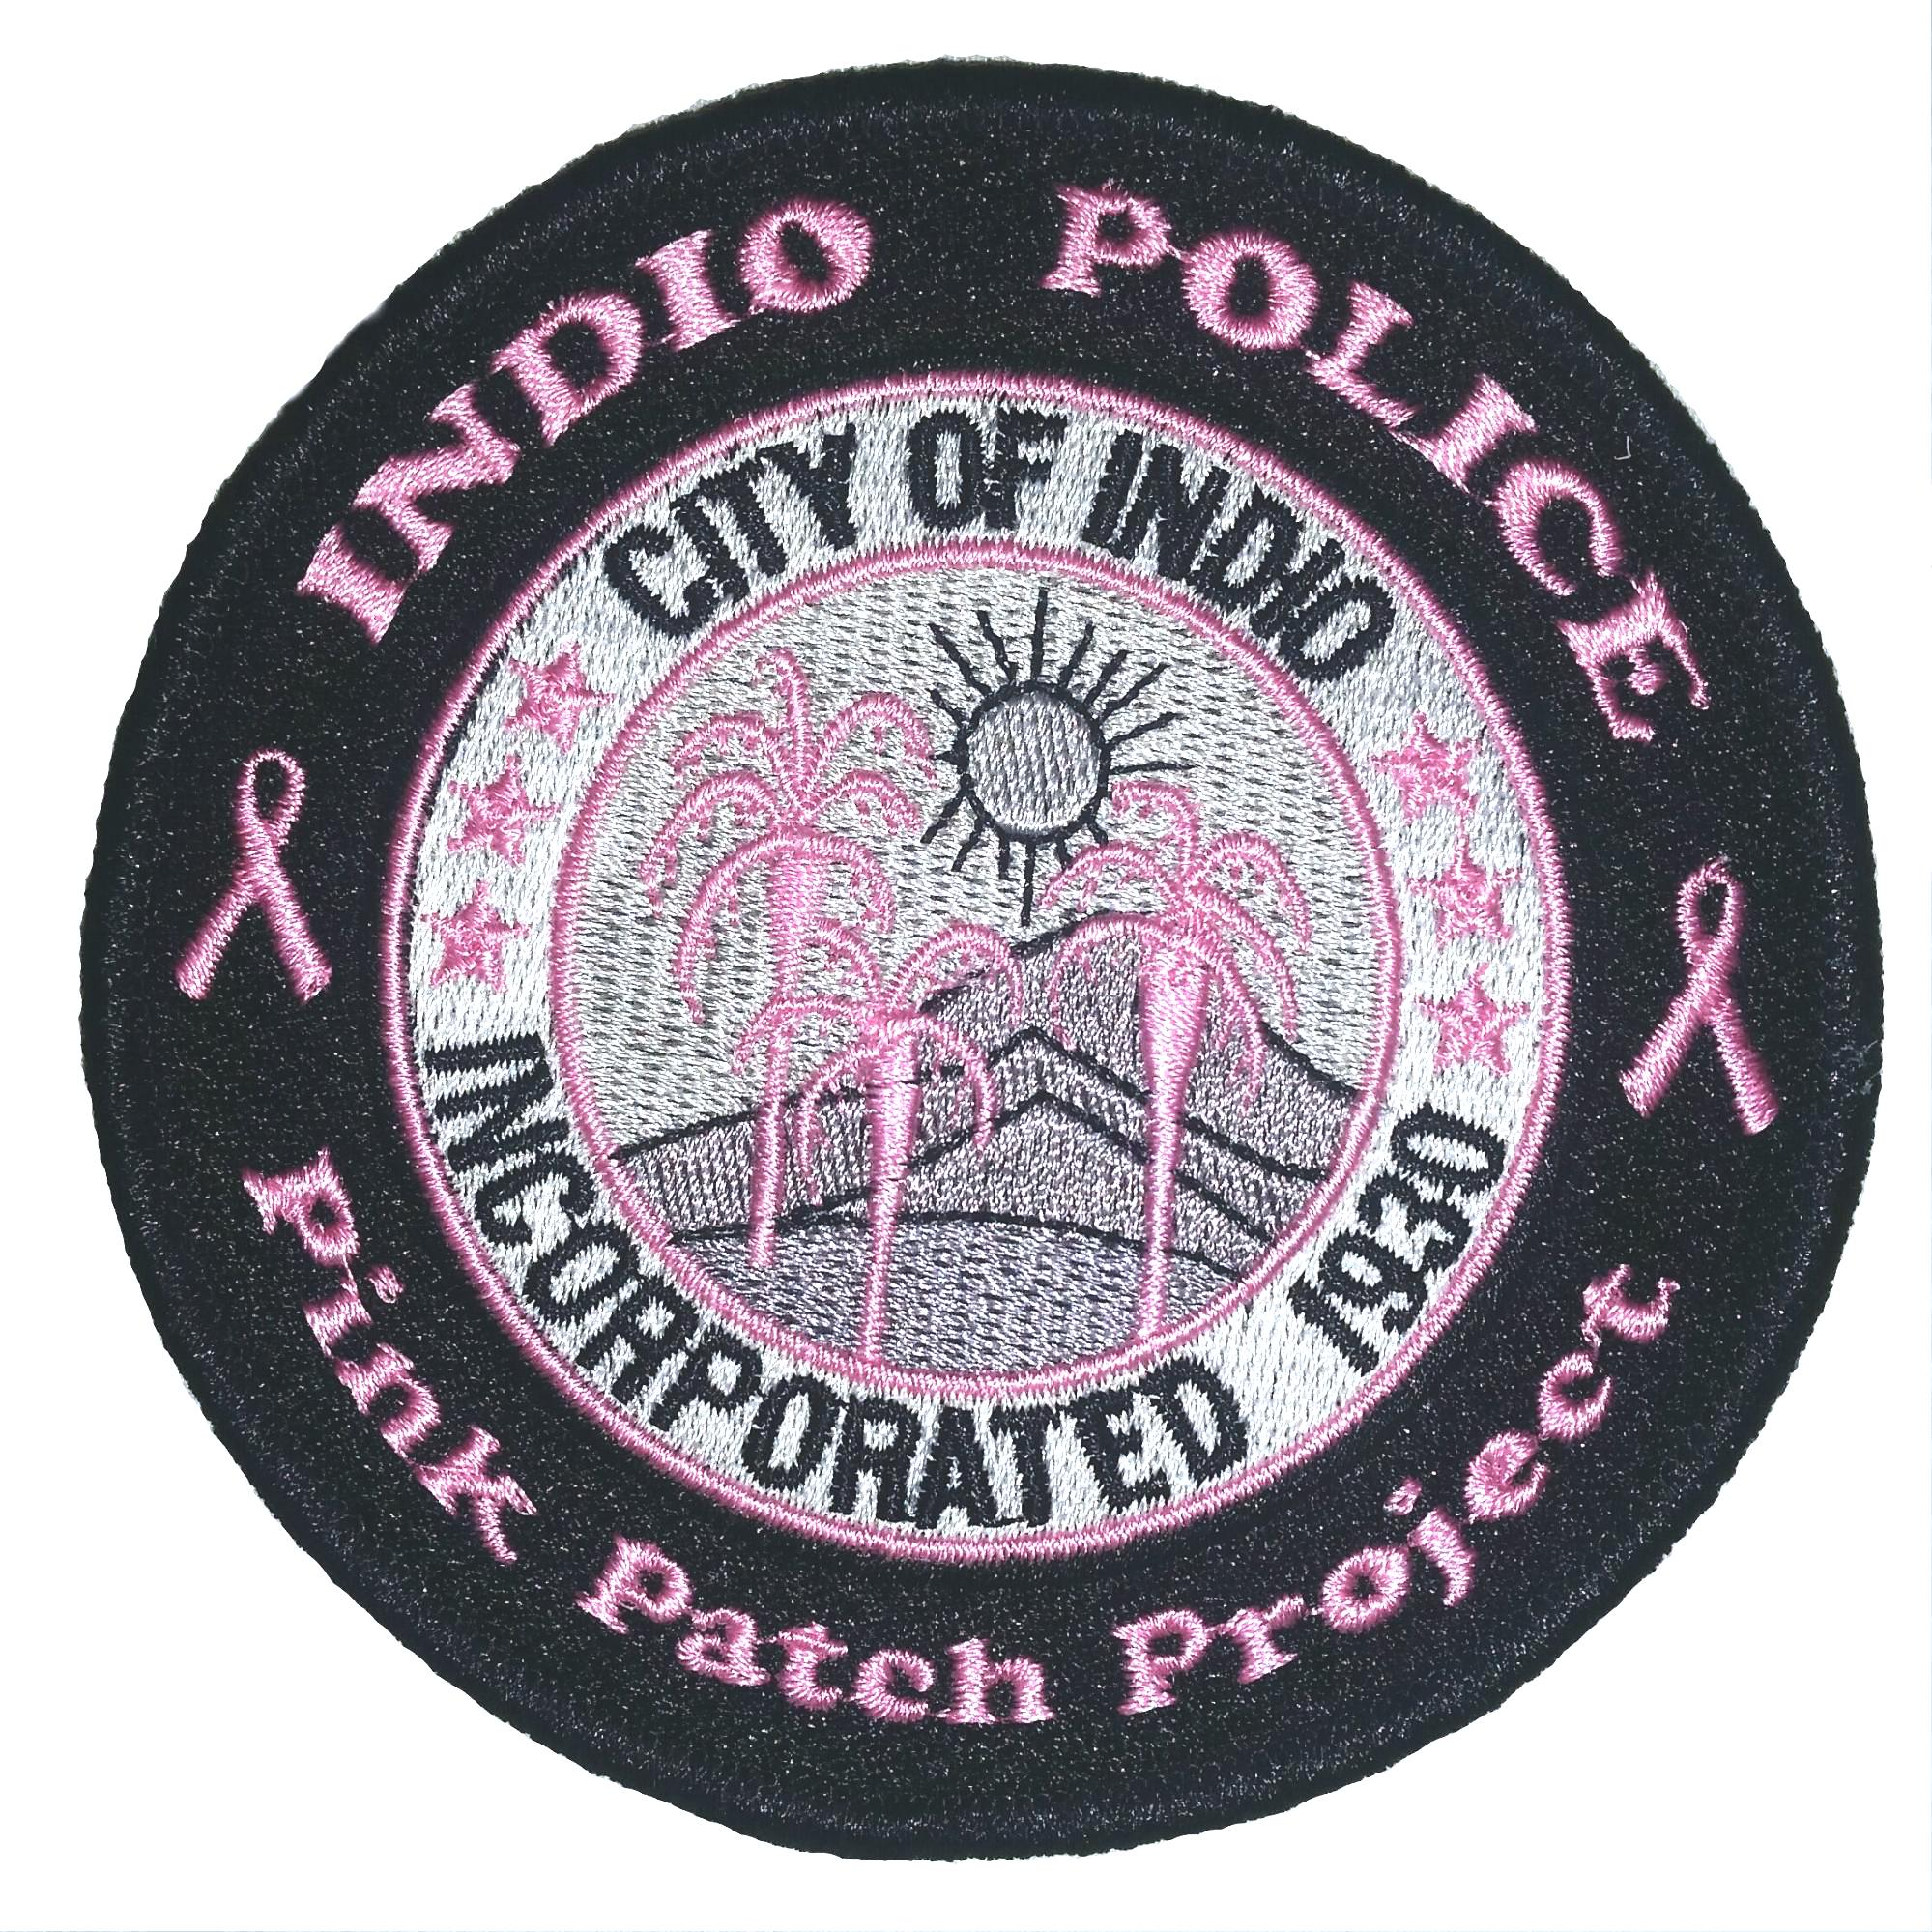 Pink Patch pic.jpg